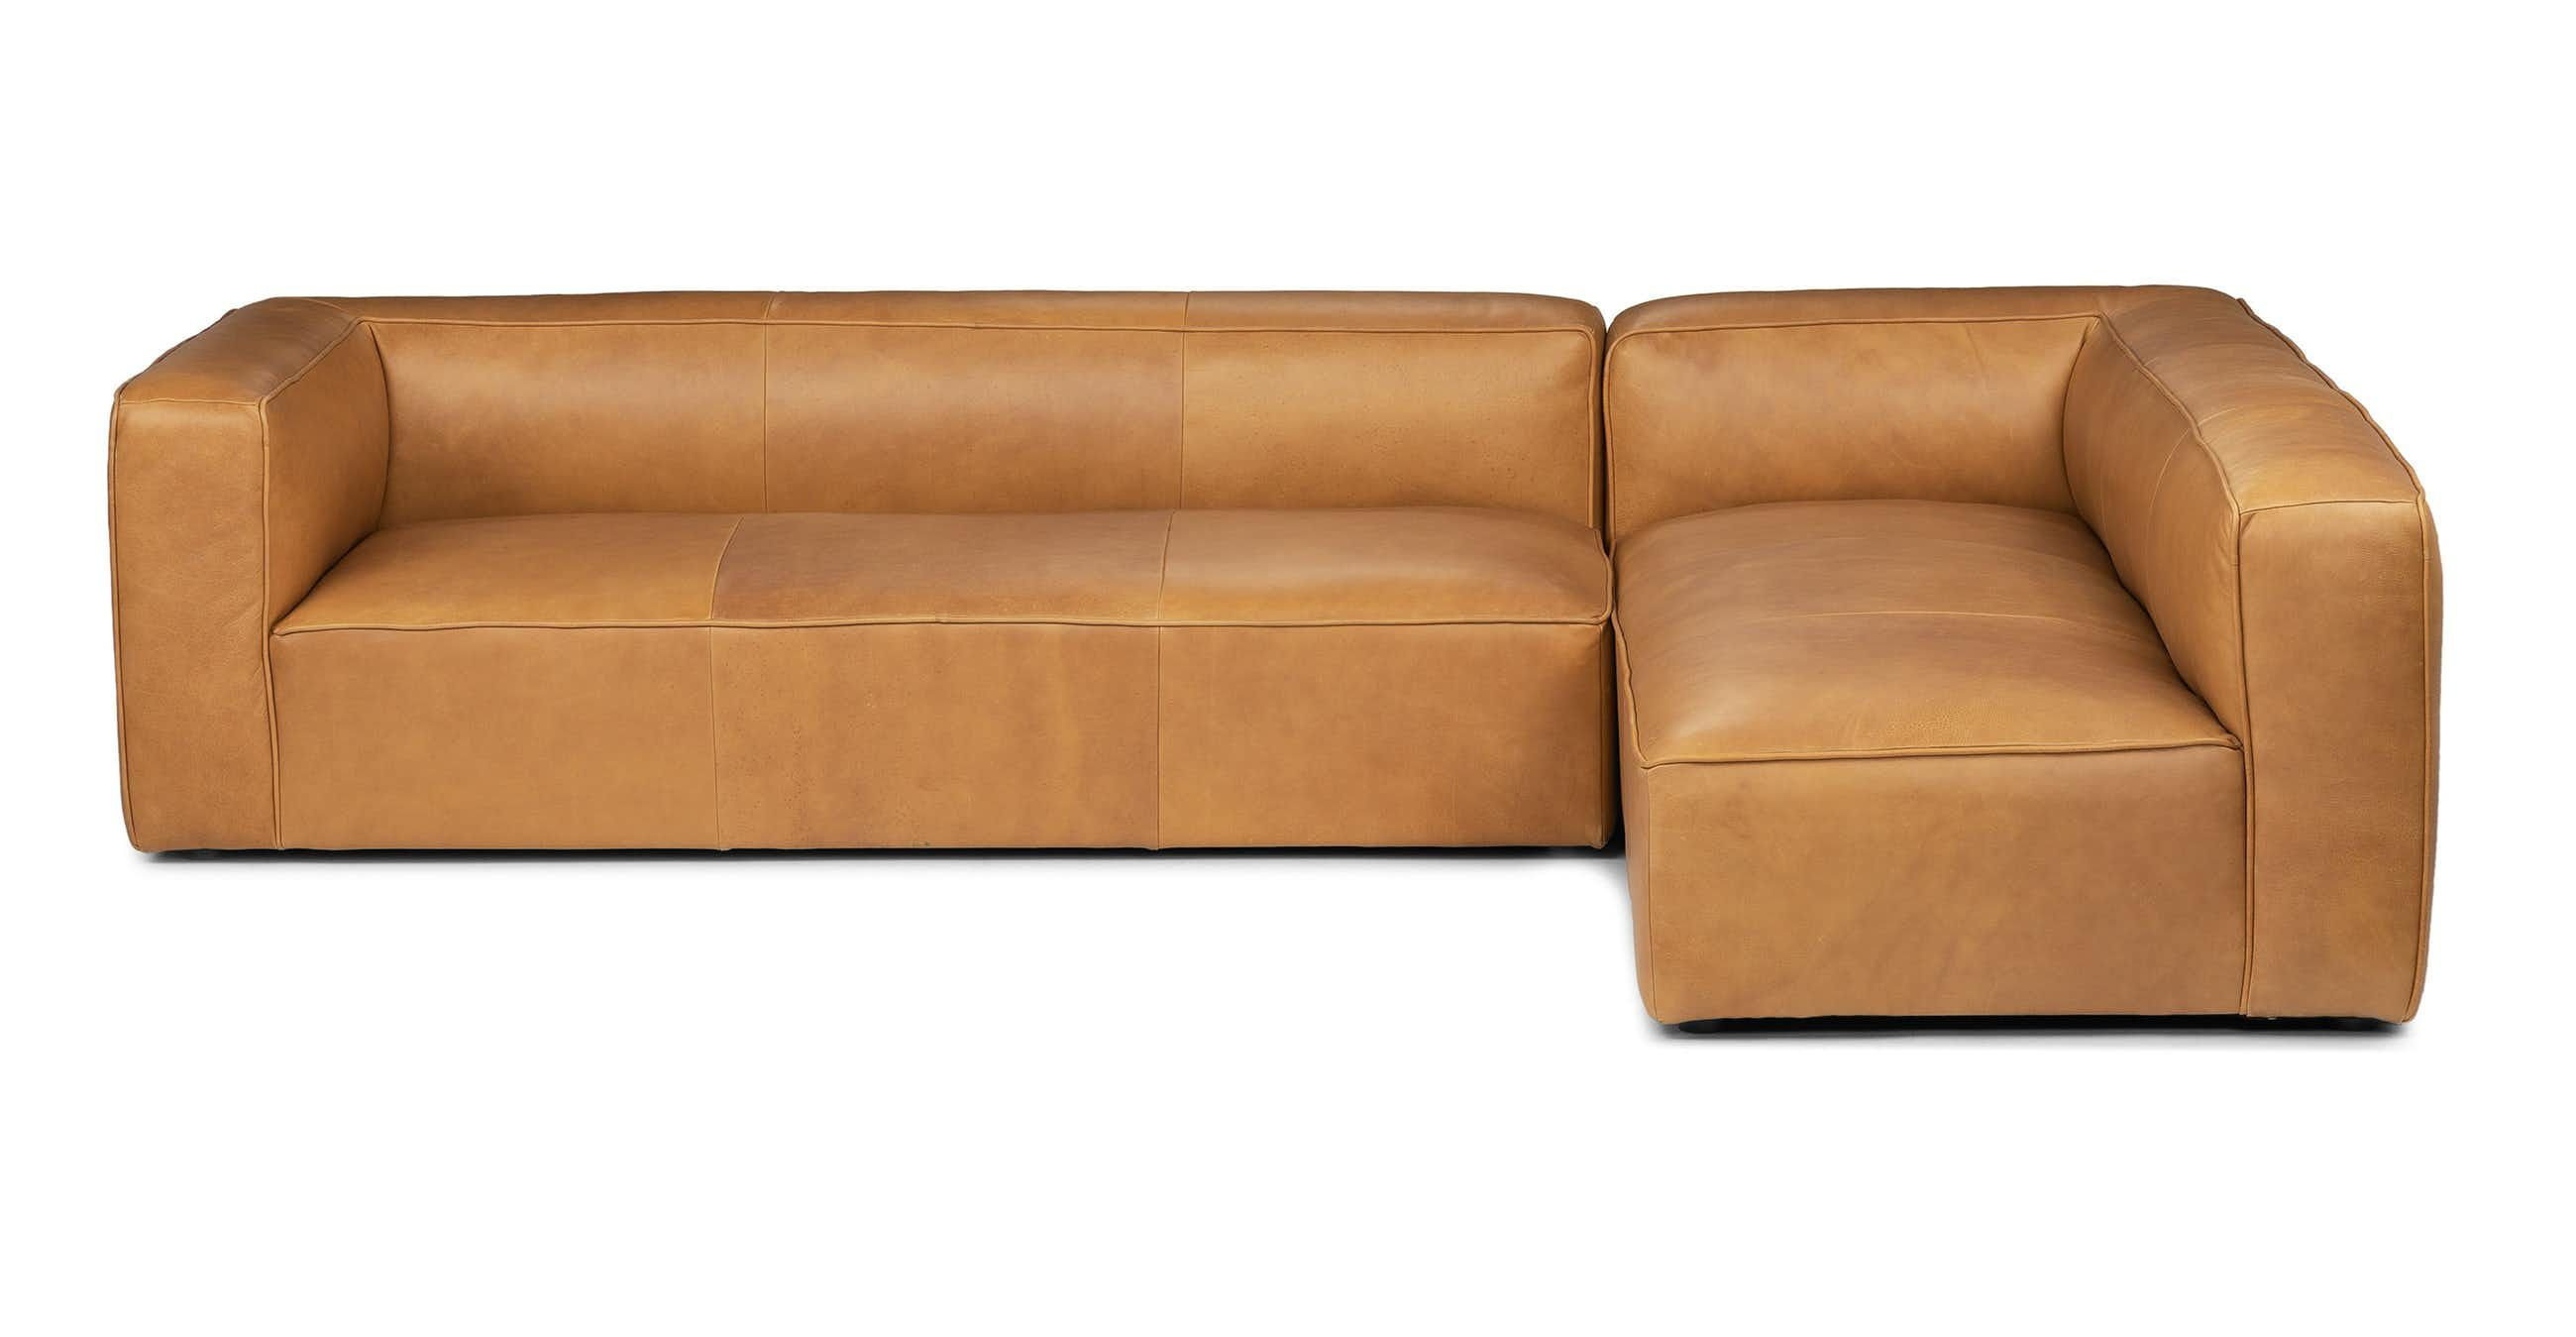 Mello Taos Tan Right Arm Corner Sectional Modern Leather